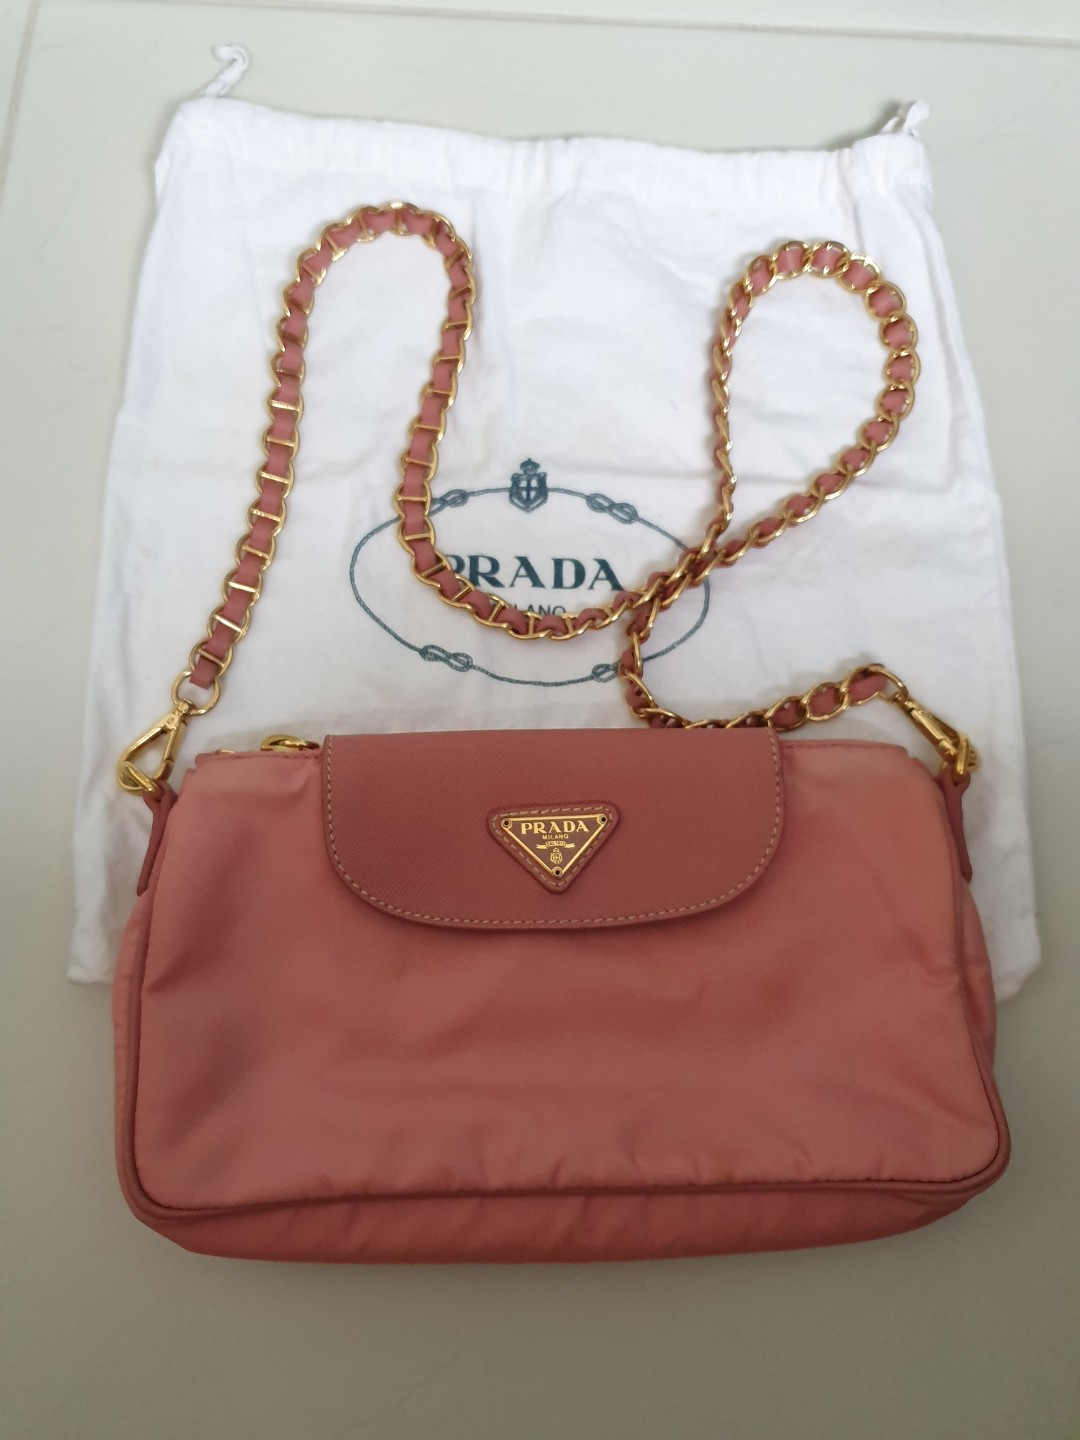 c78d559bf Authentic Prada Chain Sling bag, Luxury, Bags & Wallets, Handbags on  Carousell